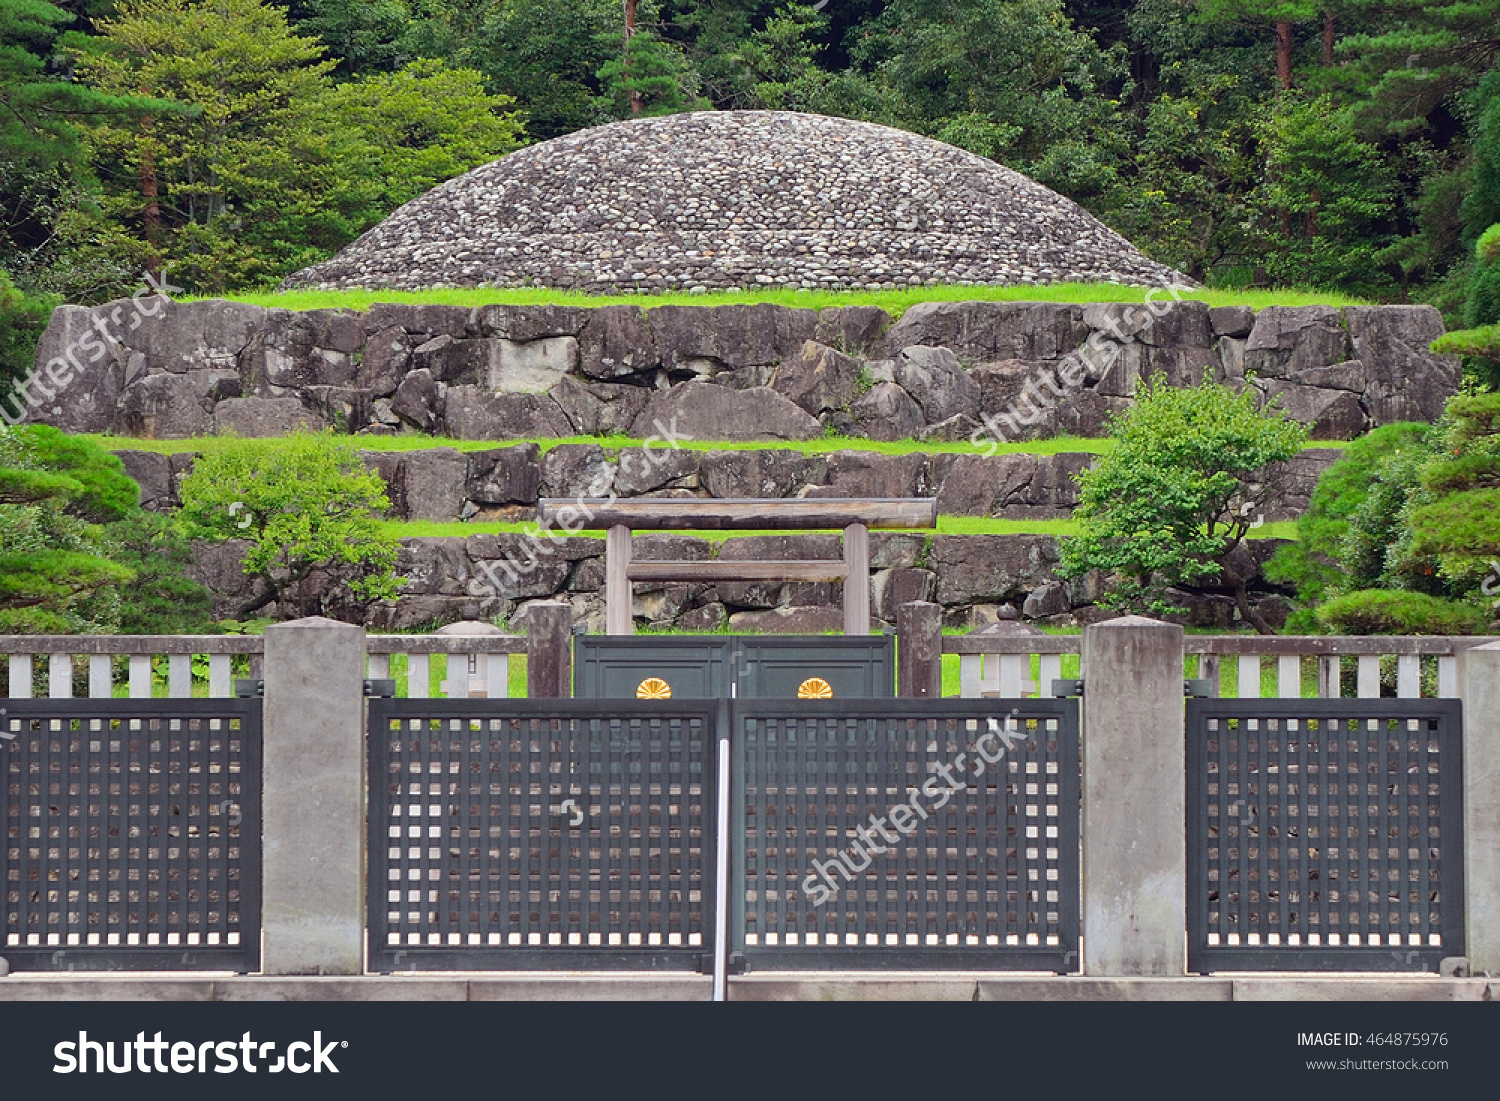 Hachioji Japan July 23 Tomb Emperor Stock Photo 464875976.